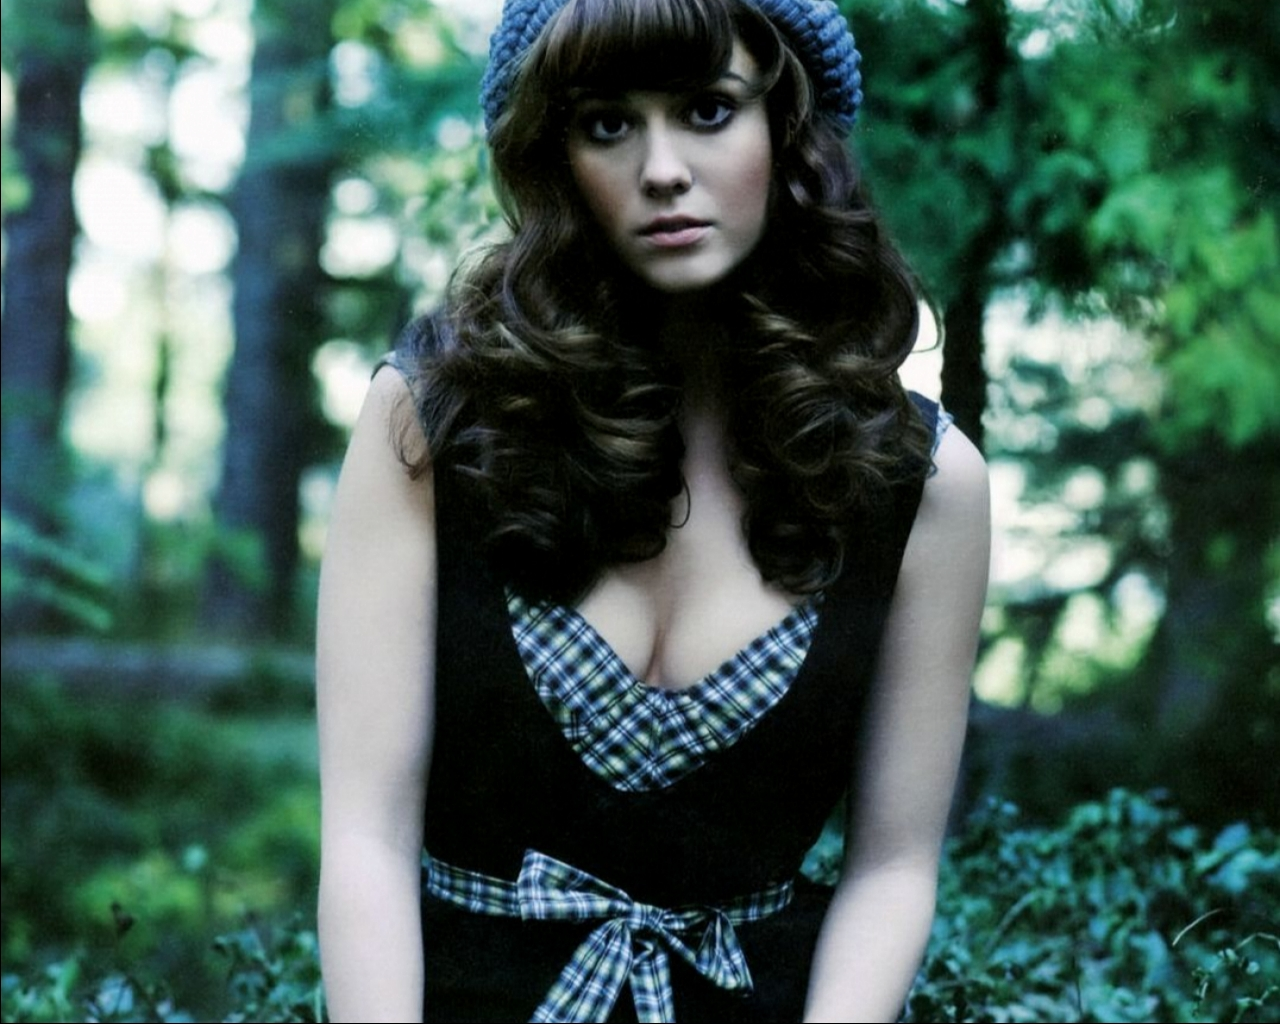 mary elizabeth winstead usa hot and beautiful women of